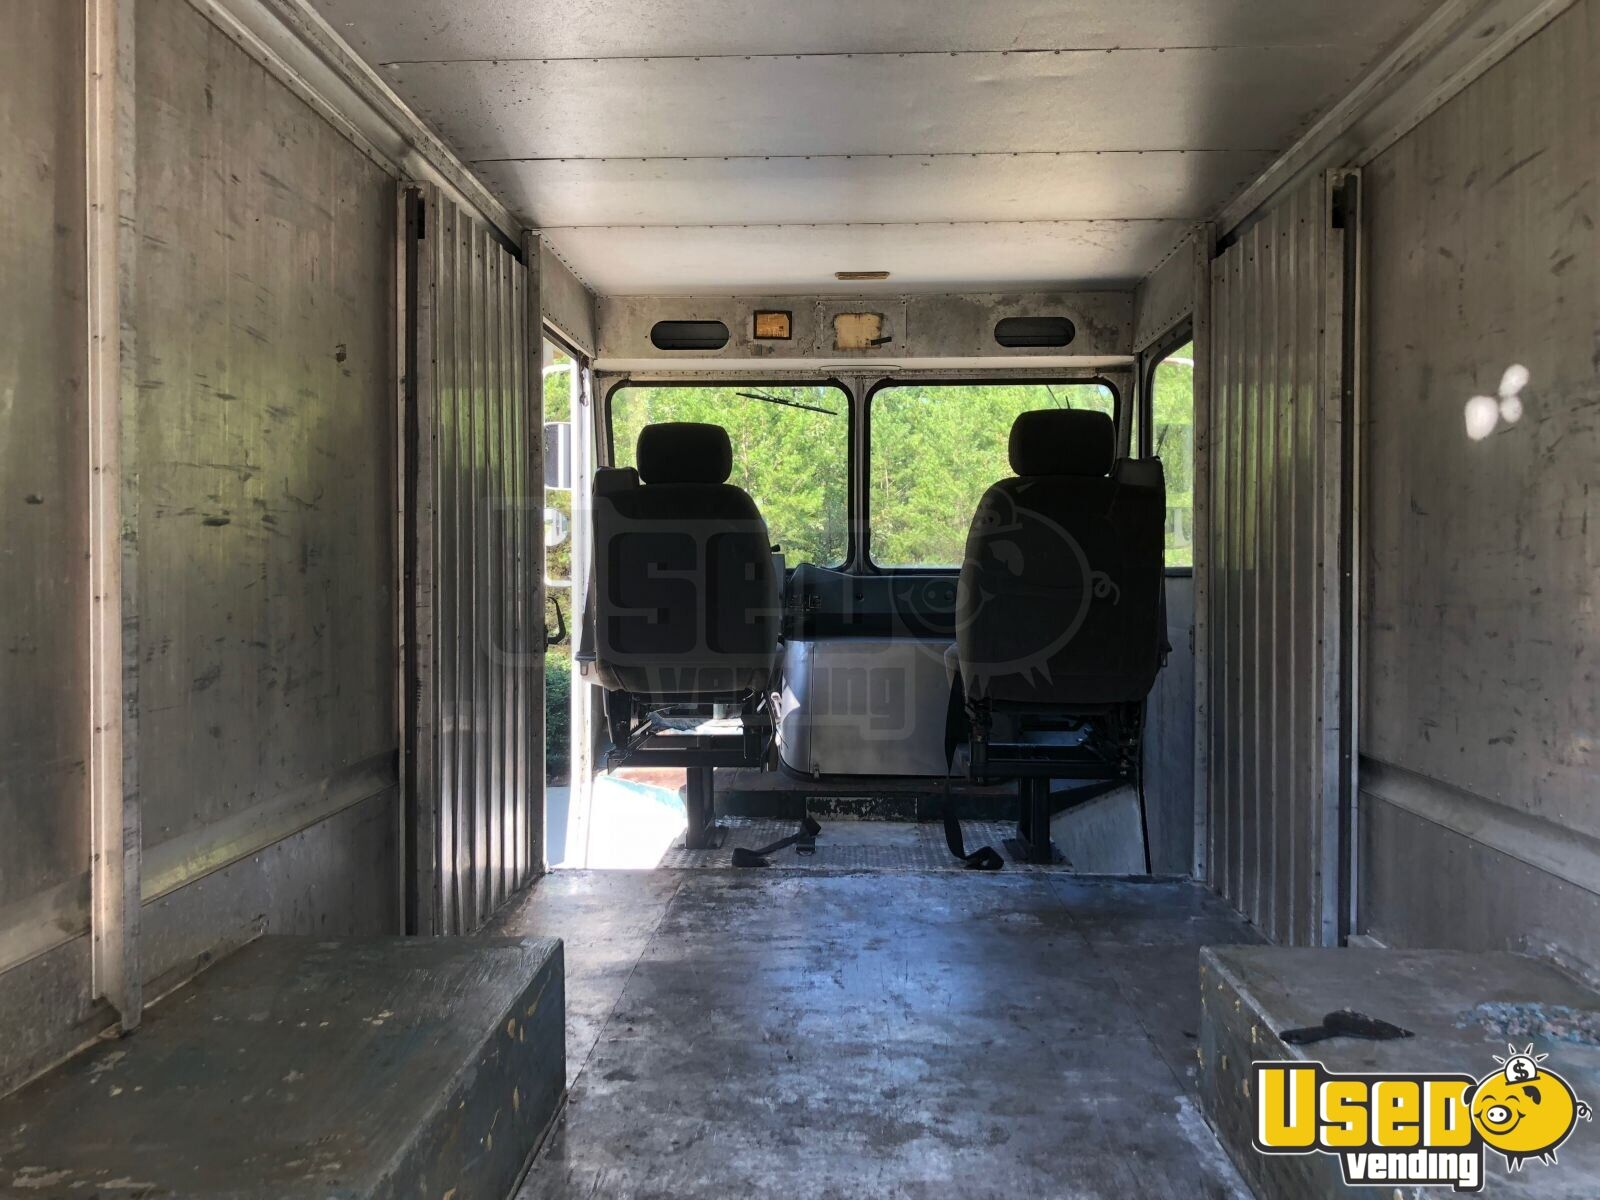 1978 Chevrolet P30 Stepvan 9 North Carolina for Sale - 9